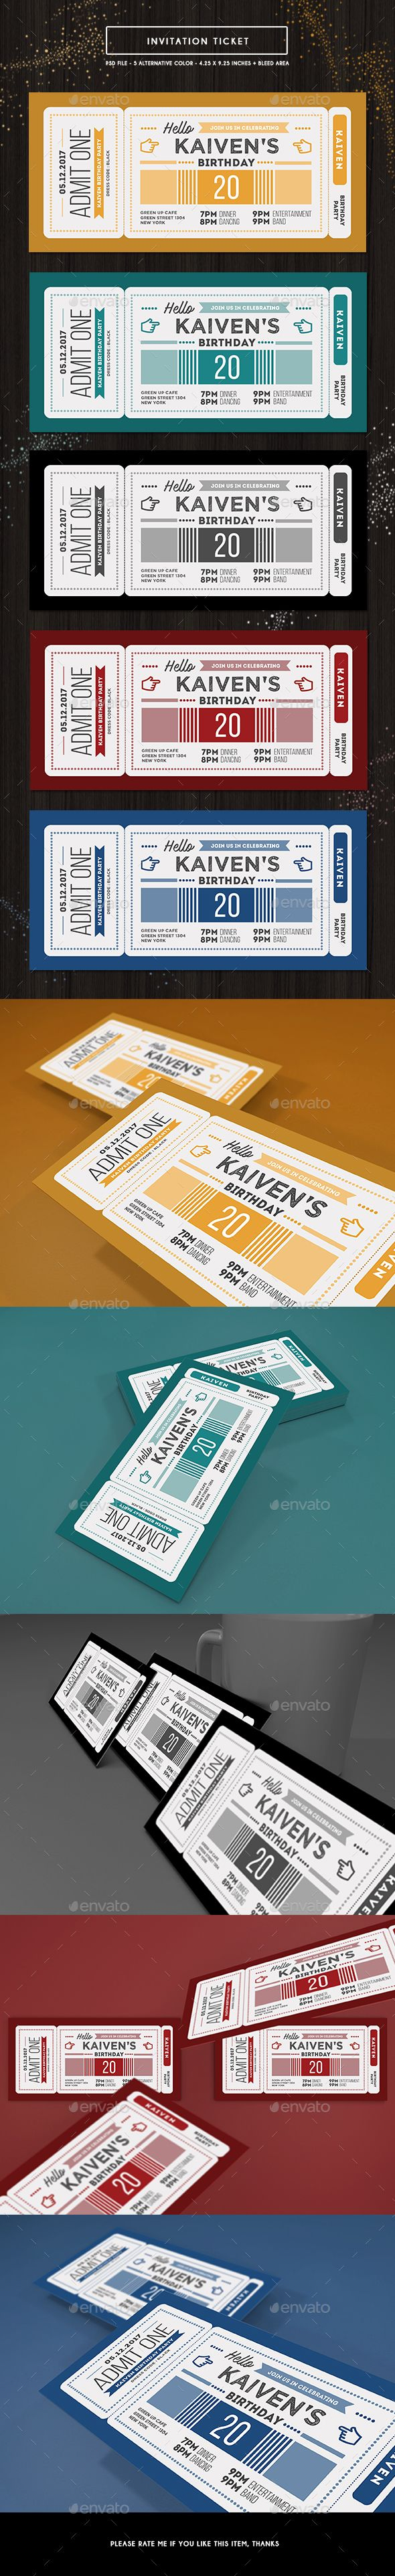 292 best ticket images on pinterest event tickets font logo and